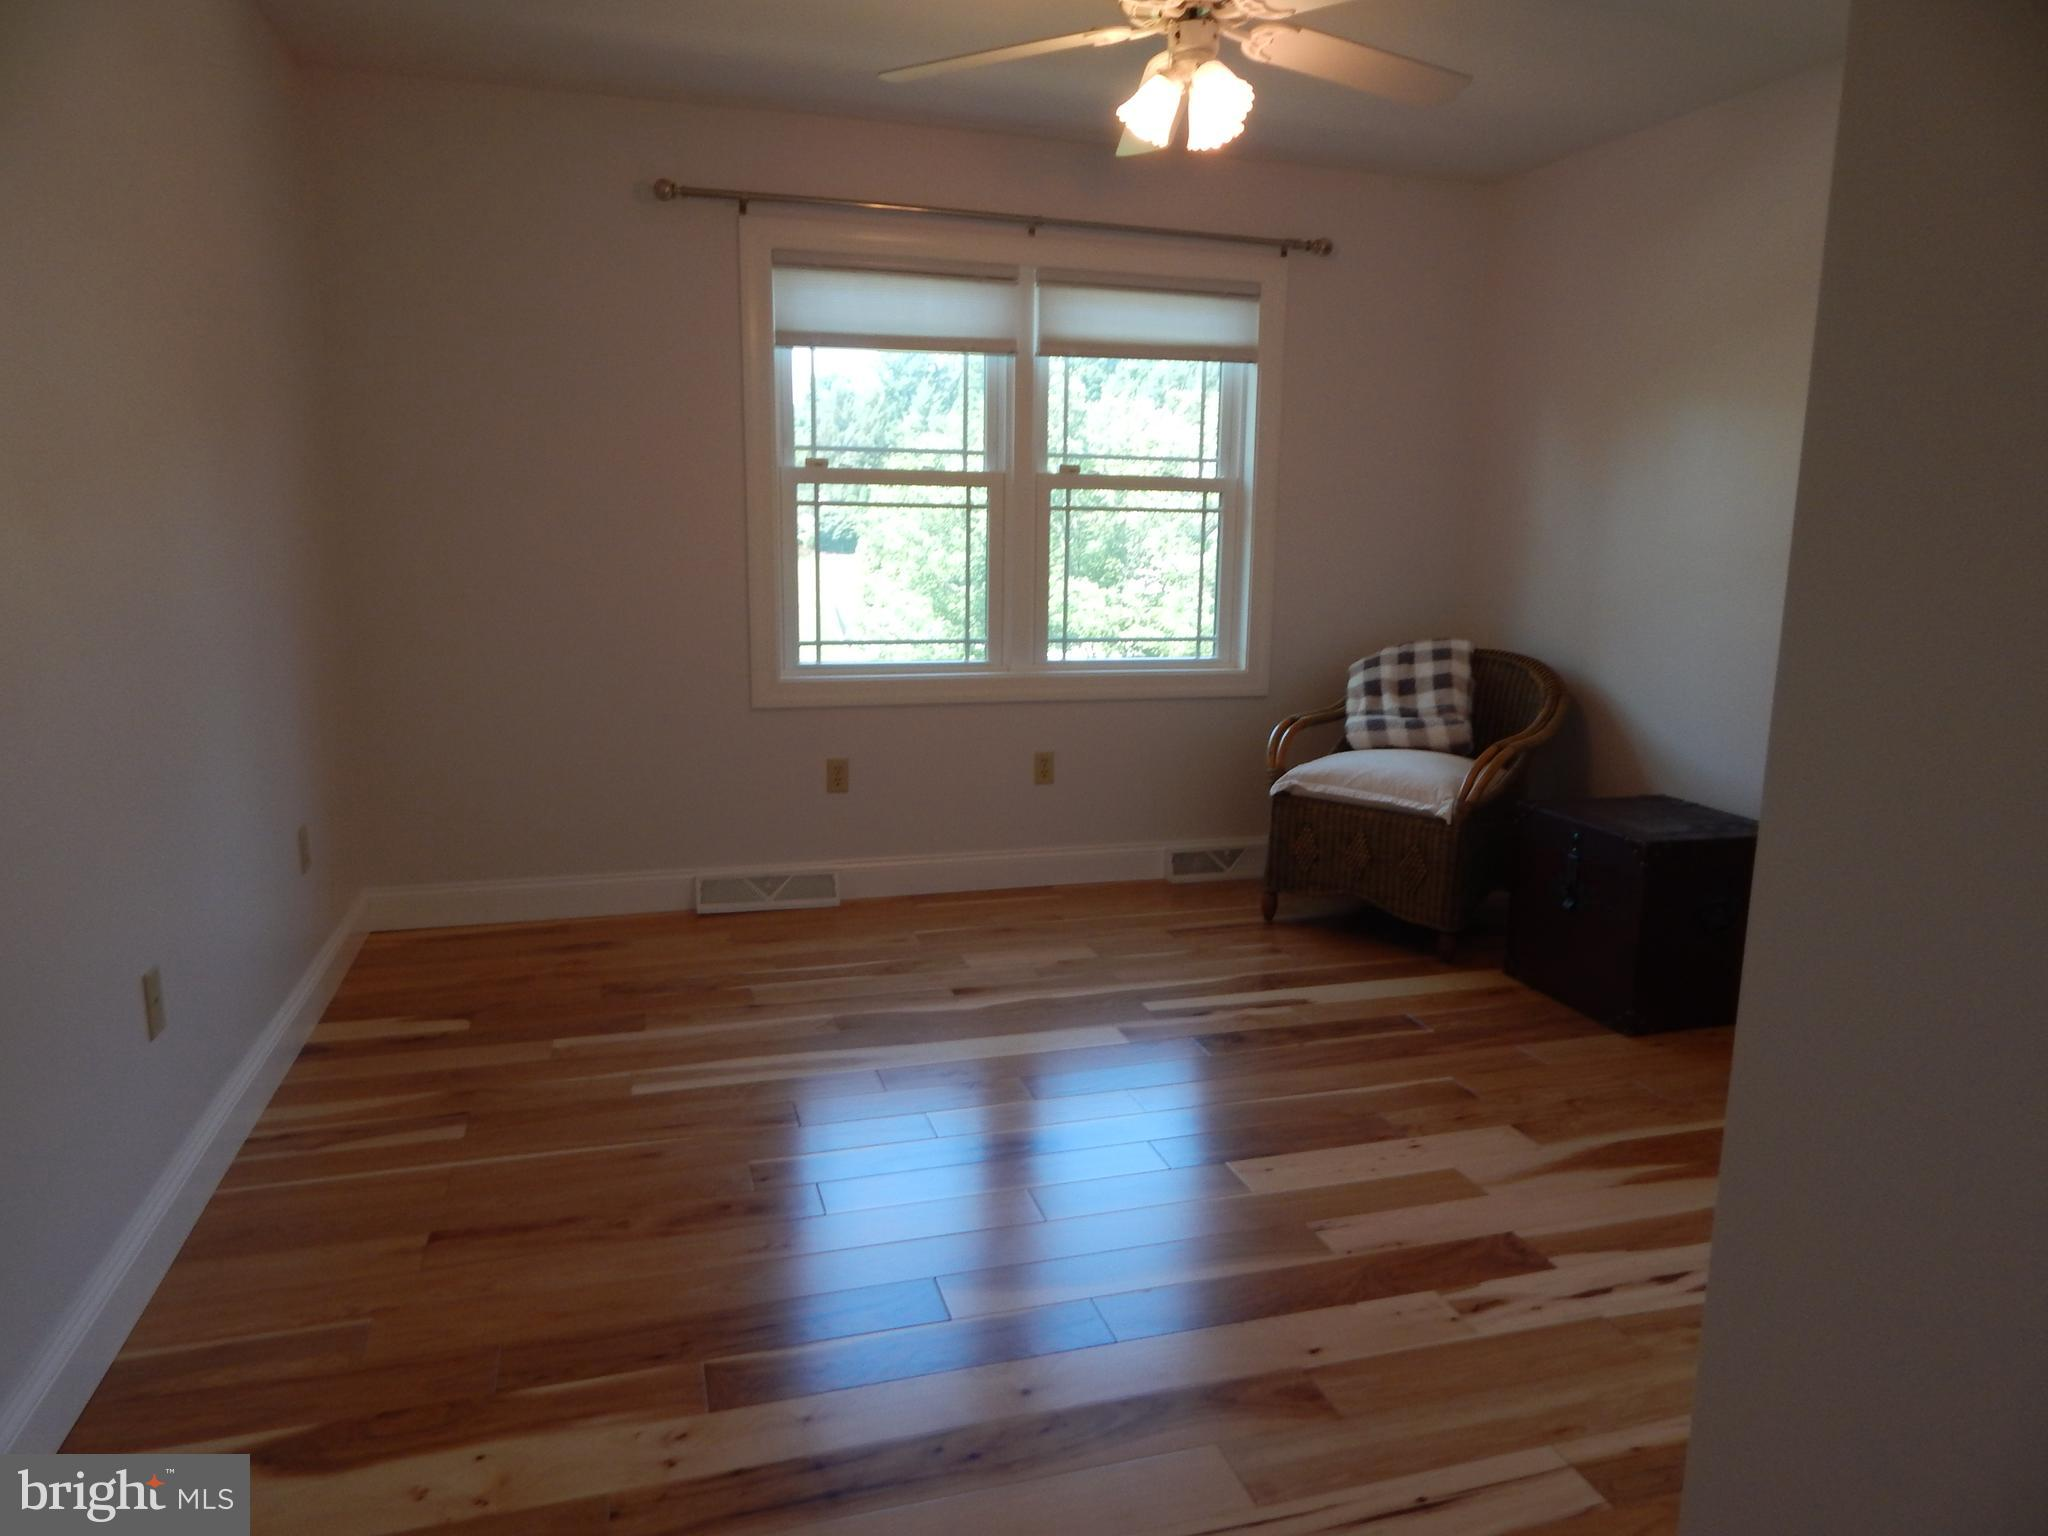 Fresh, updated flooring and paint